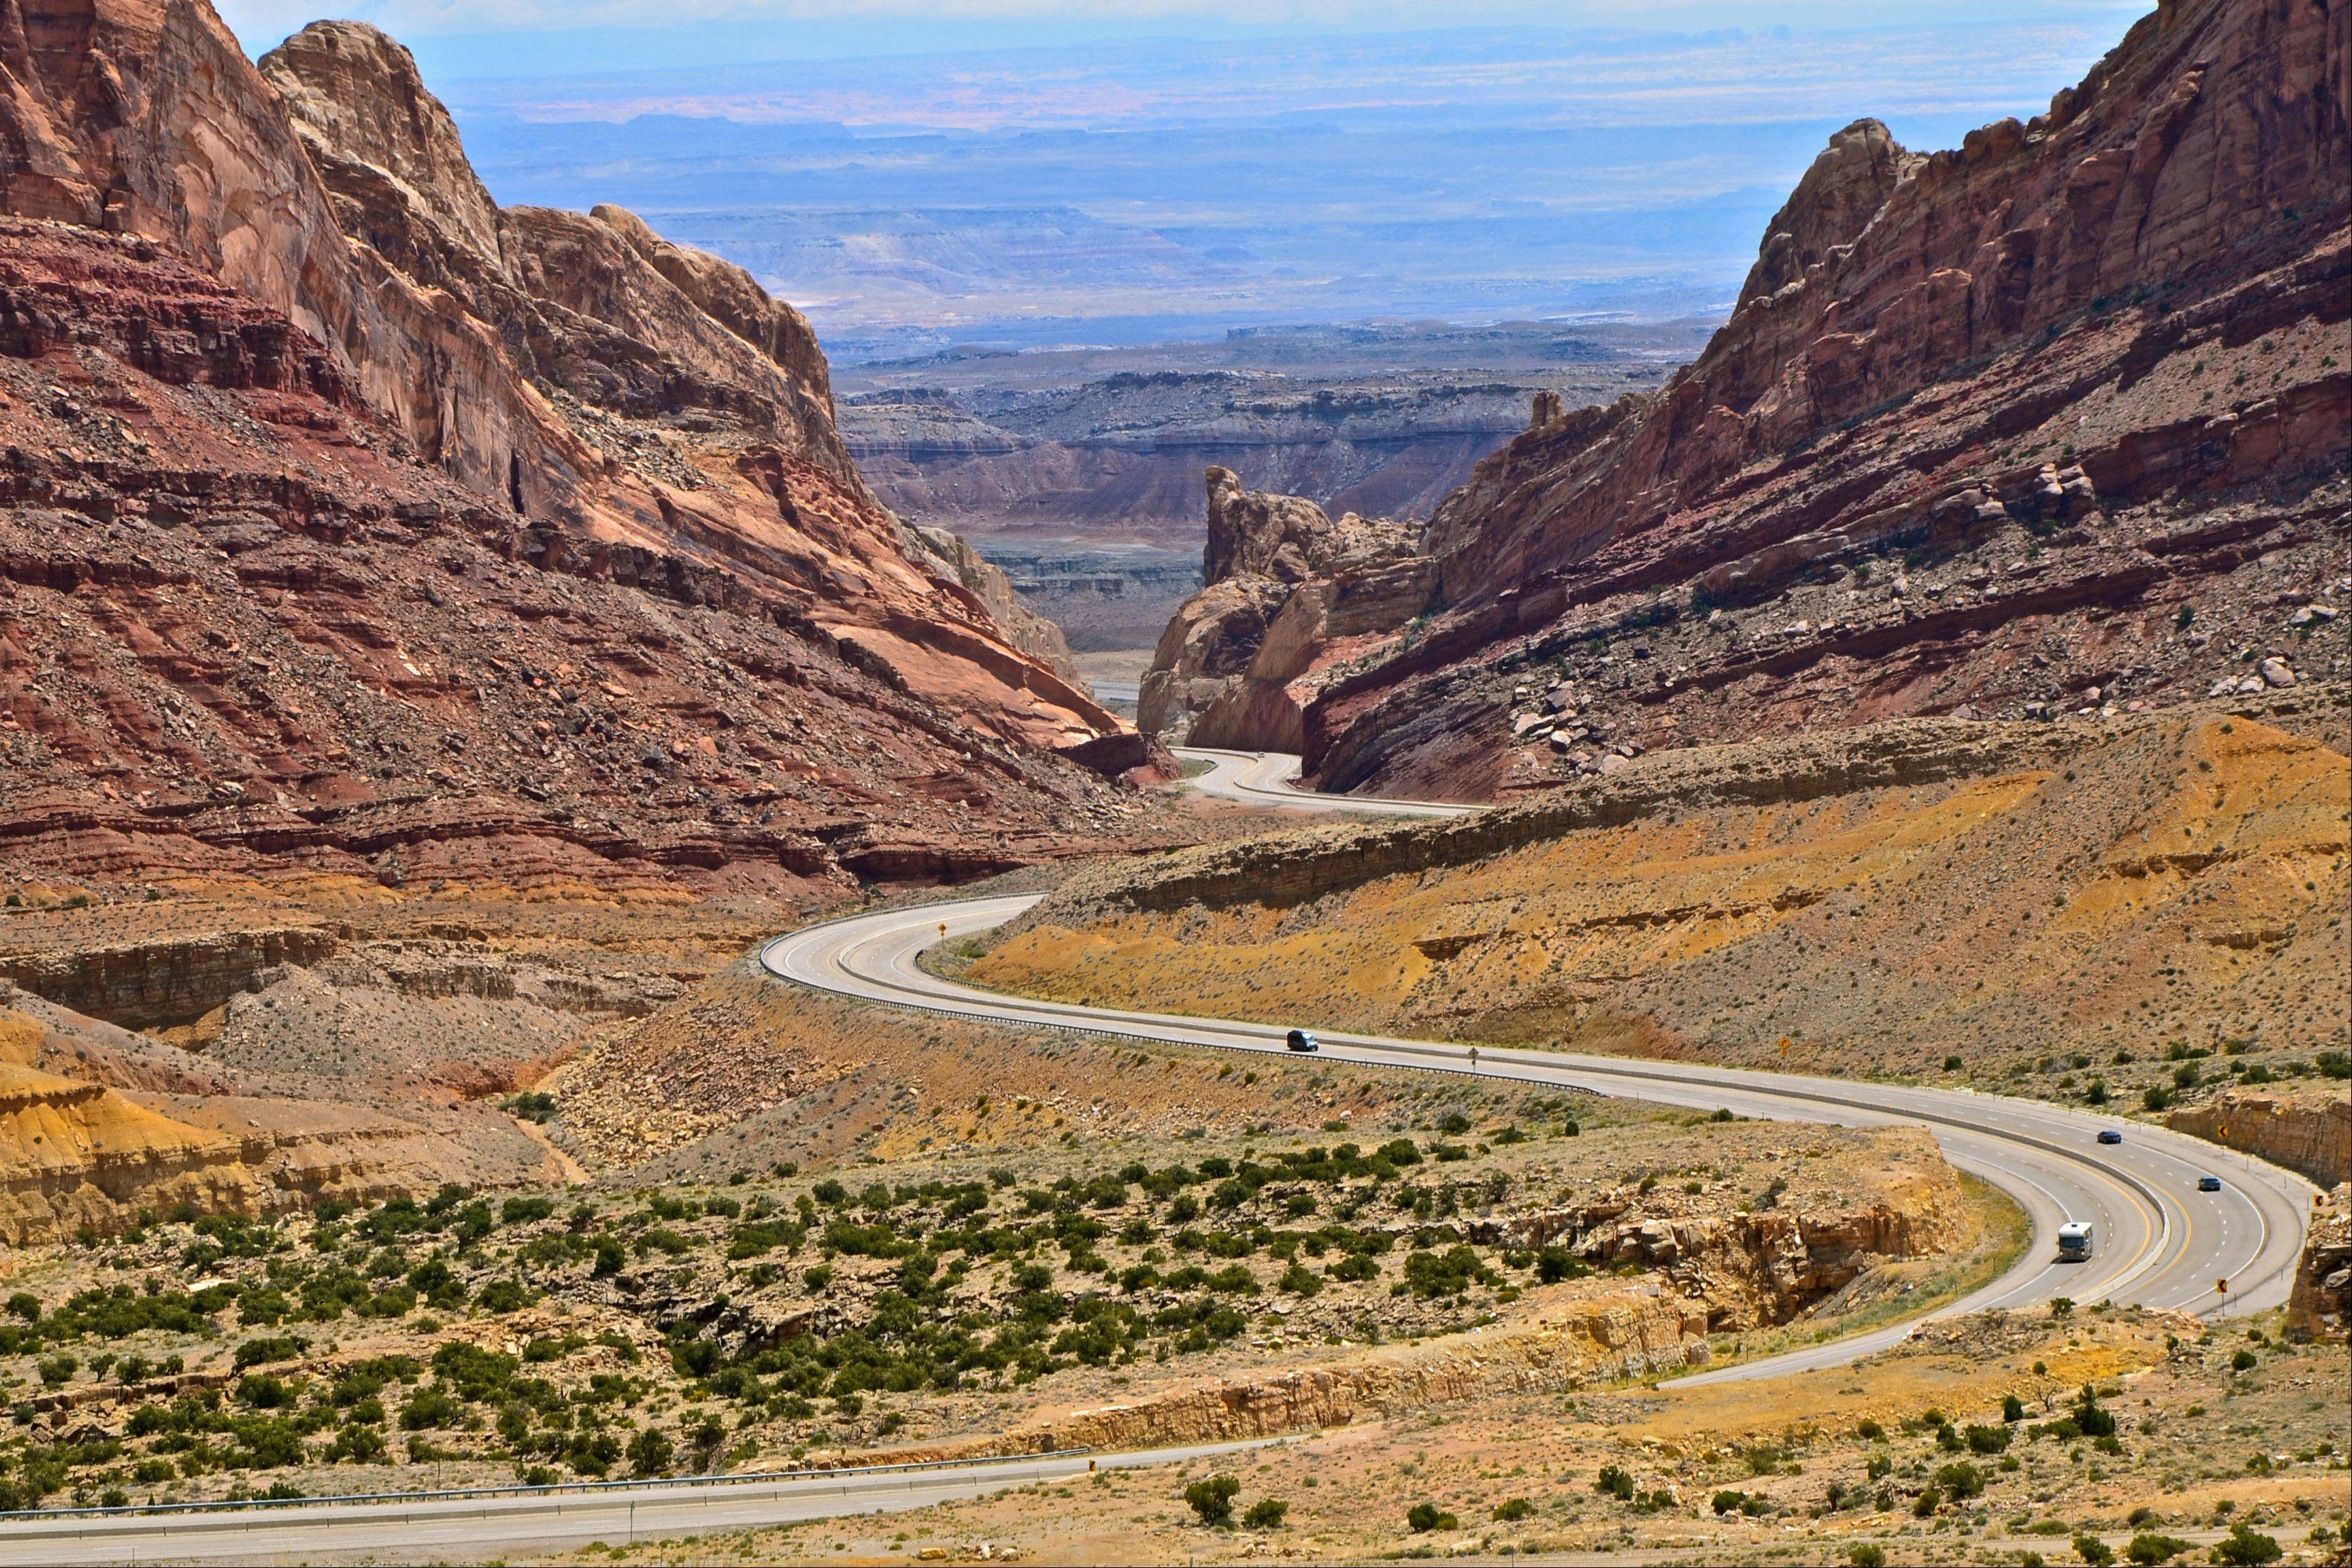 Most people who have driven through the San Rafael reef on I-70 in central Utah have seen this view and probably taken this picture. I couldn't resist taking my own.